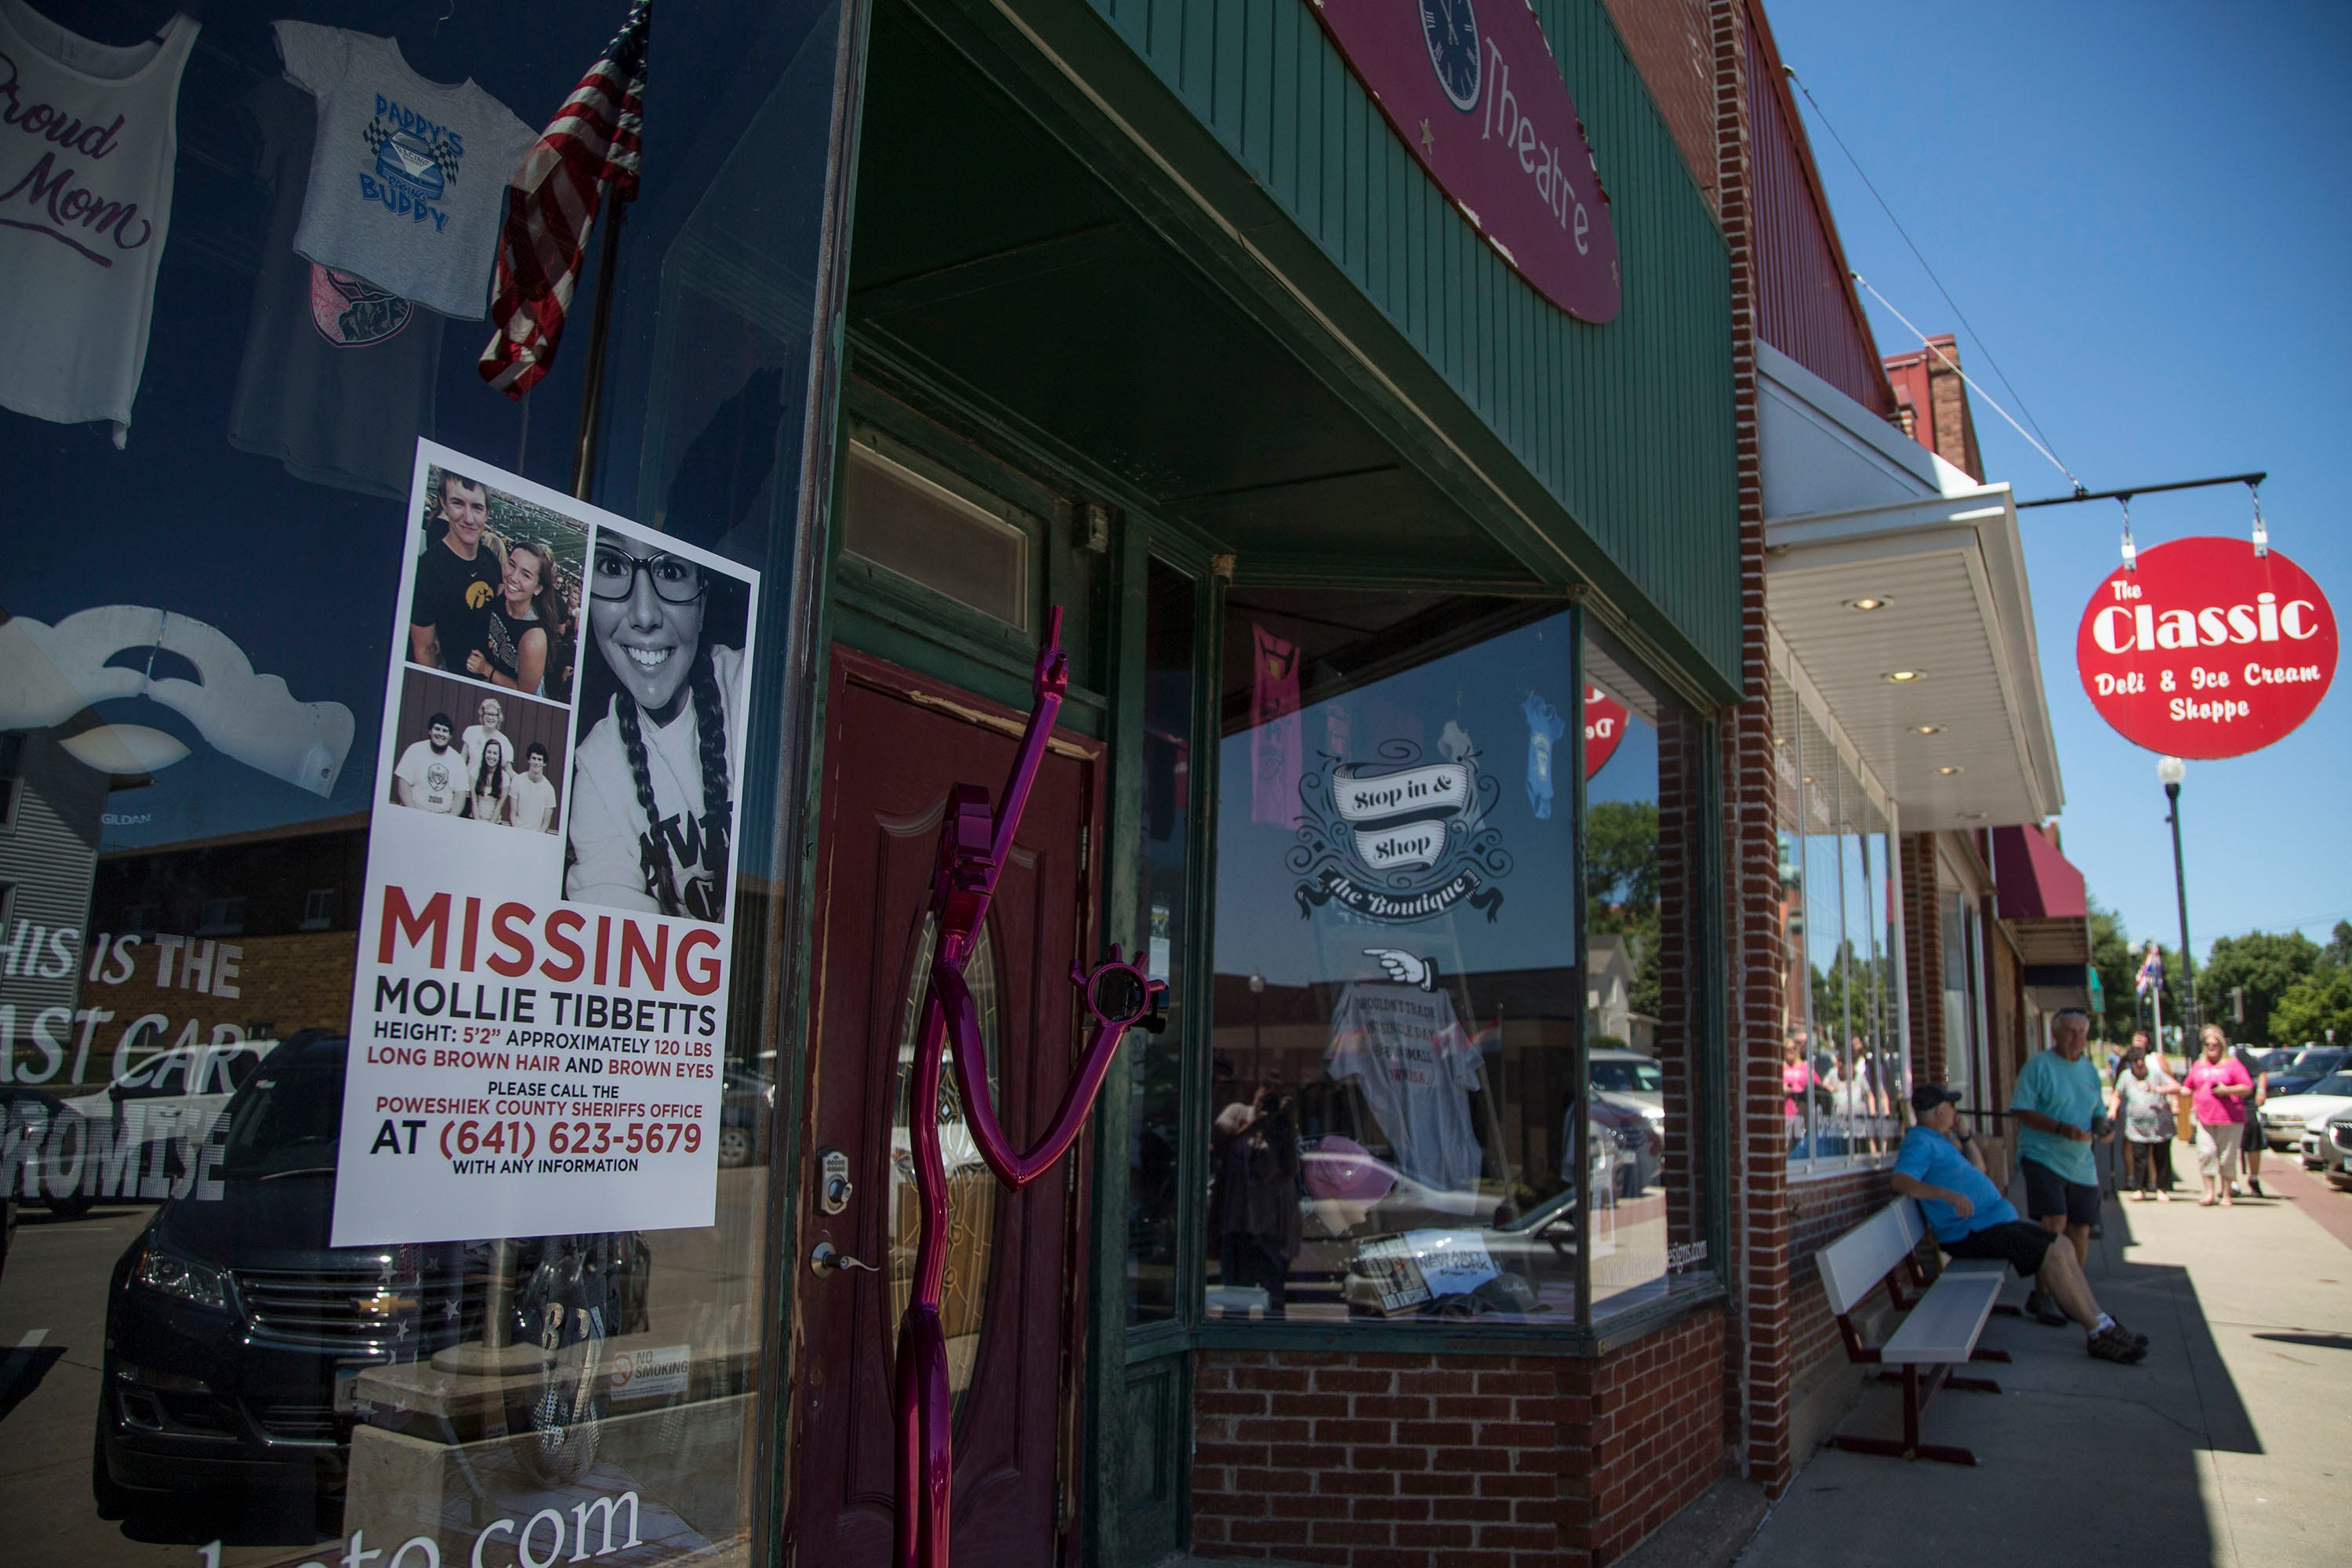 A poster with information about Mollie Tibbetts hangs in the window of a business in downtown Brooklyn.